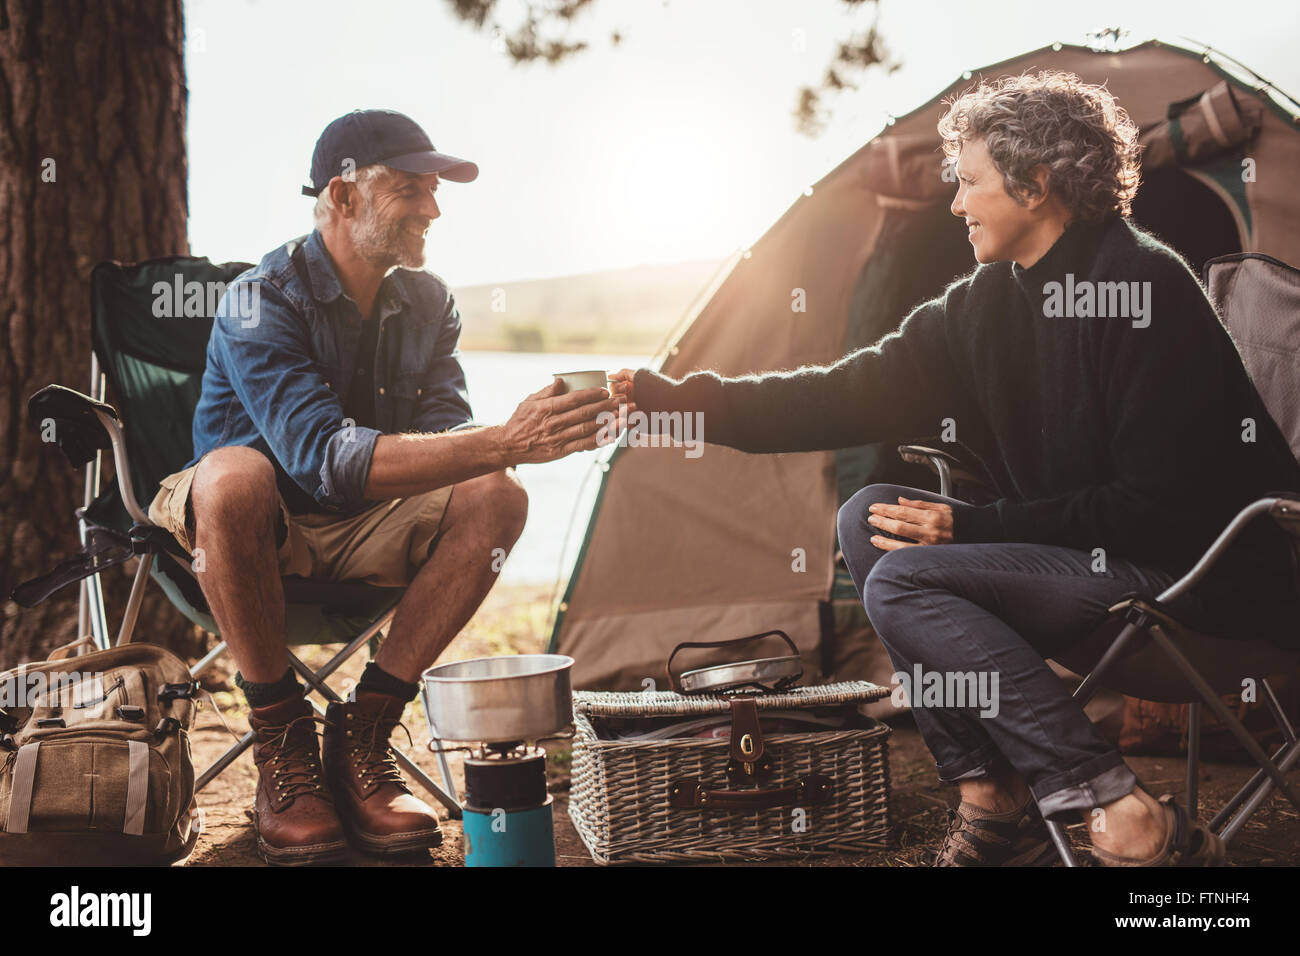 Portrait of senior woman giving a cup of coffee to man at campsite. Both sitting outside tent. Mature couple camping - Stock Image